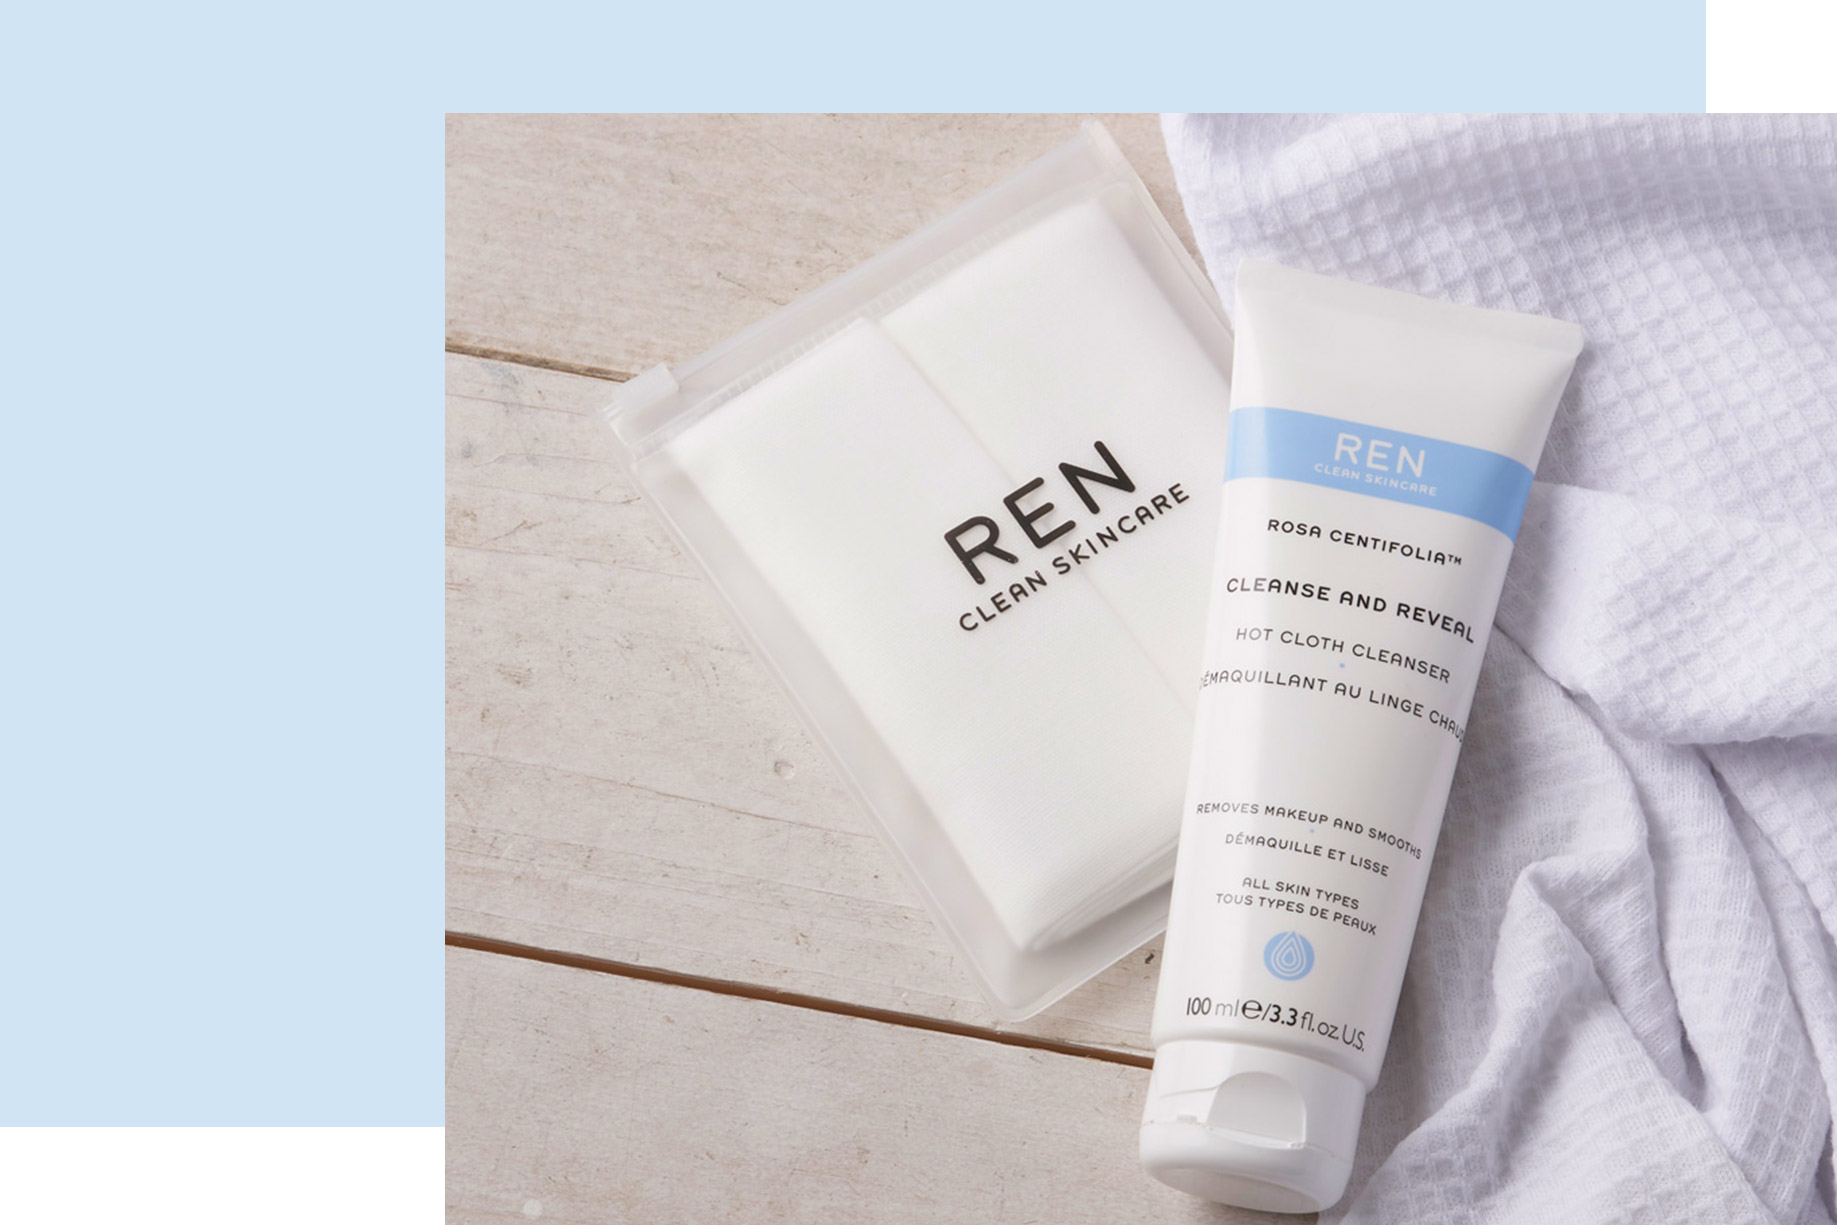 Cleansing tips for all skin types  – REN Clean Skincare